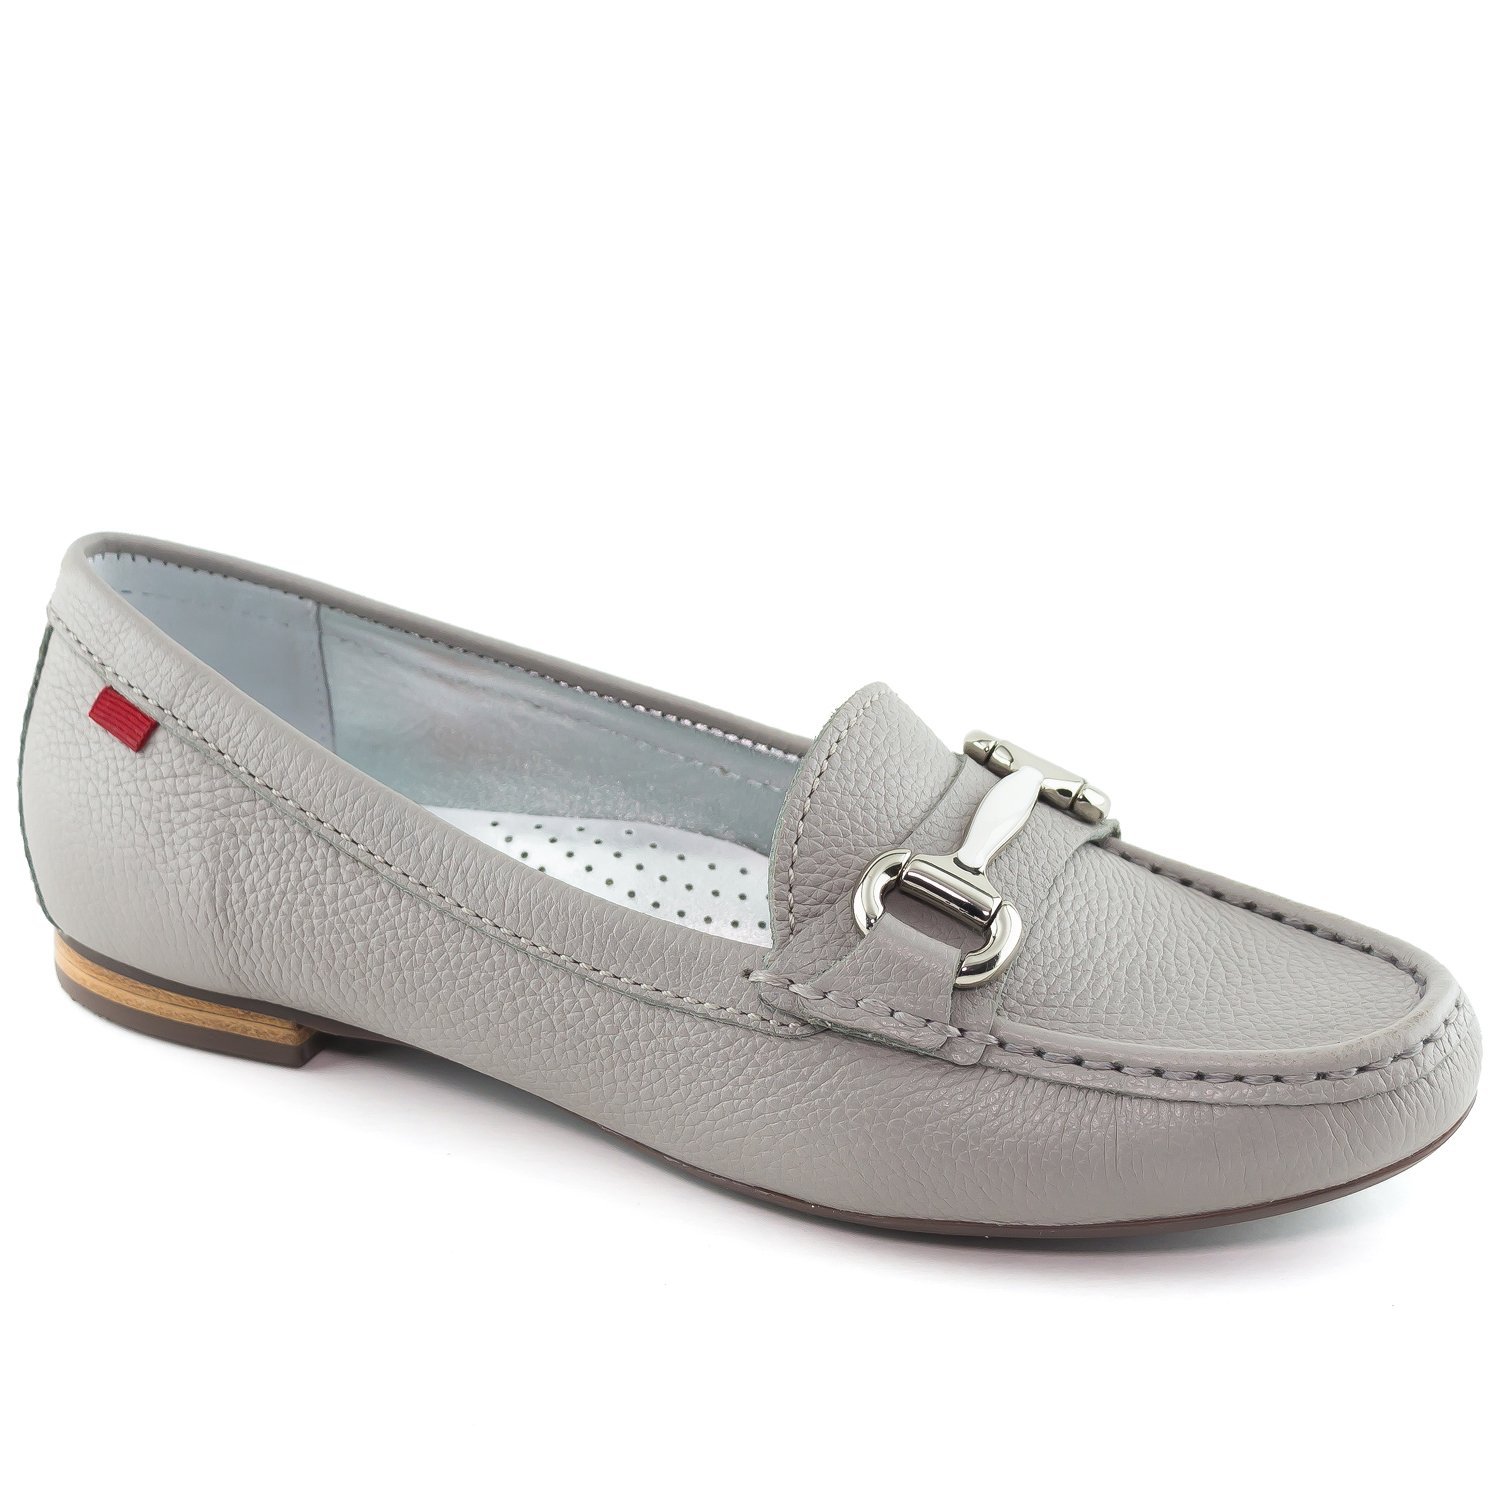 Marc Joseph New York Women's Genuine Leather Made In Brazil Grand Street Ash Grainy Buckle Loafer 8.5